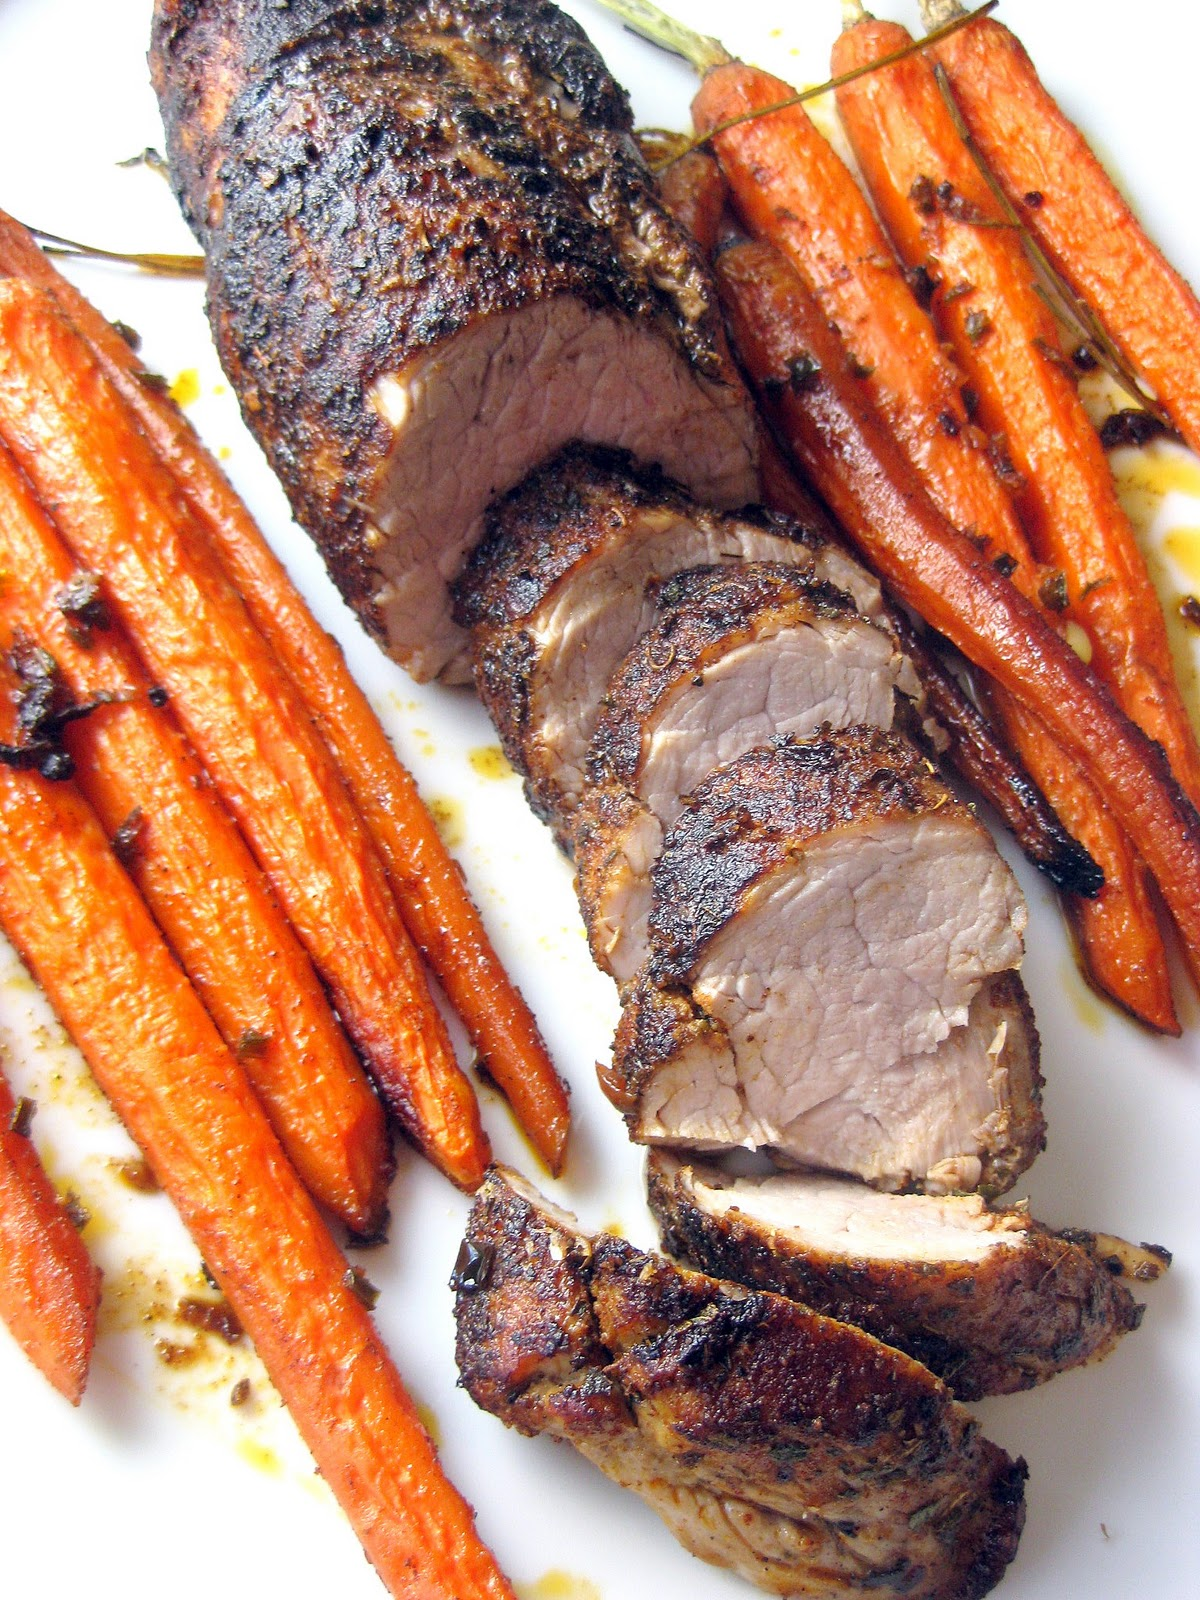 Spice-Rubbed Pork Tenderloin with Roasted Carrots | A Hint of Honey